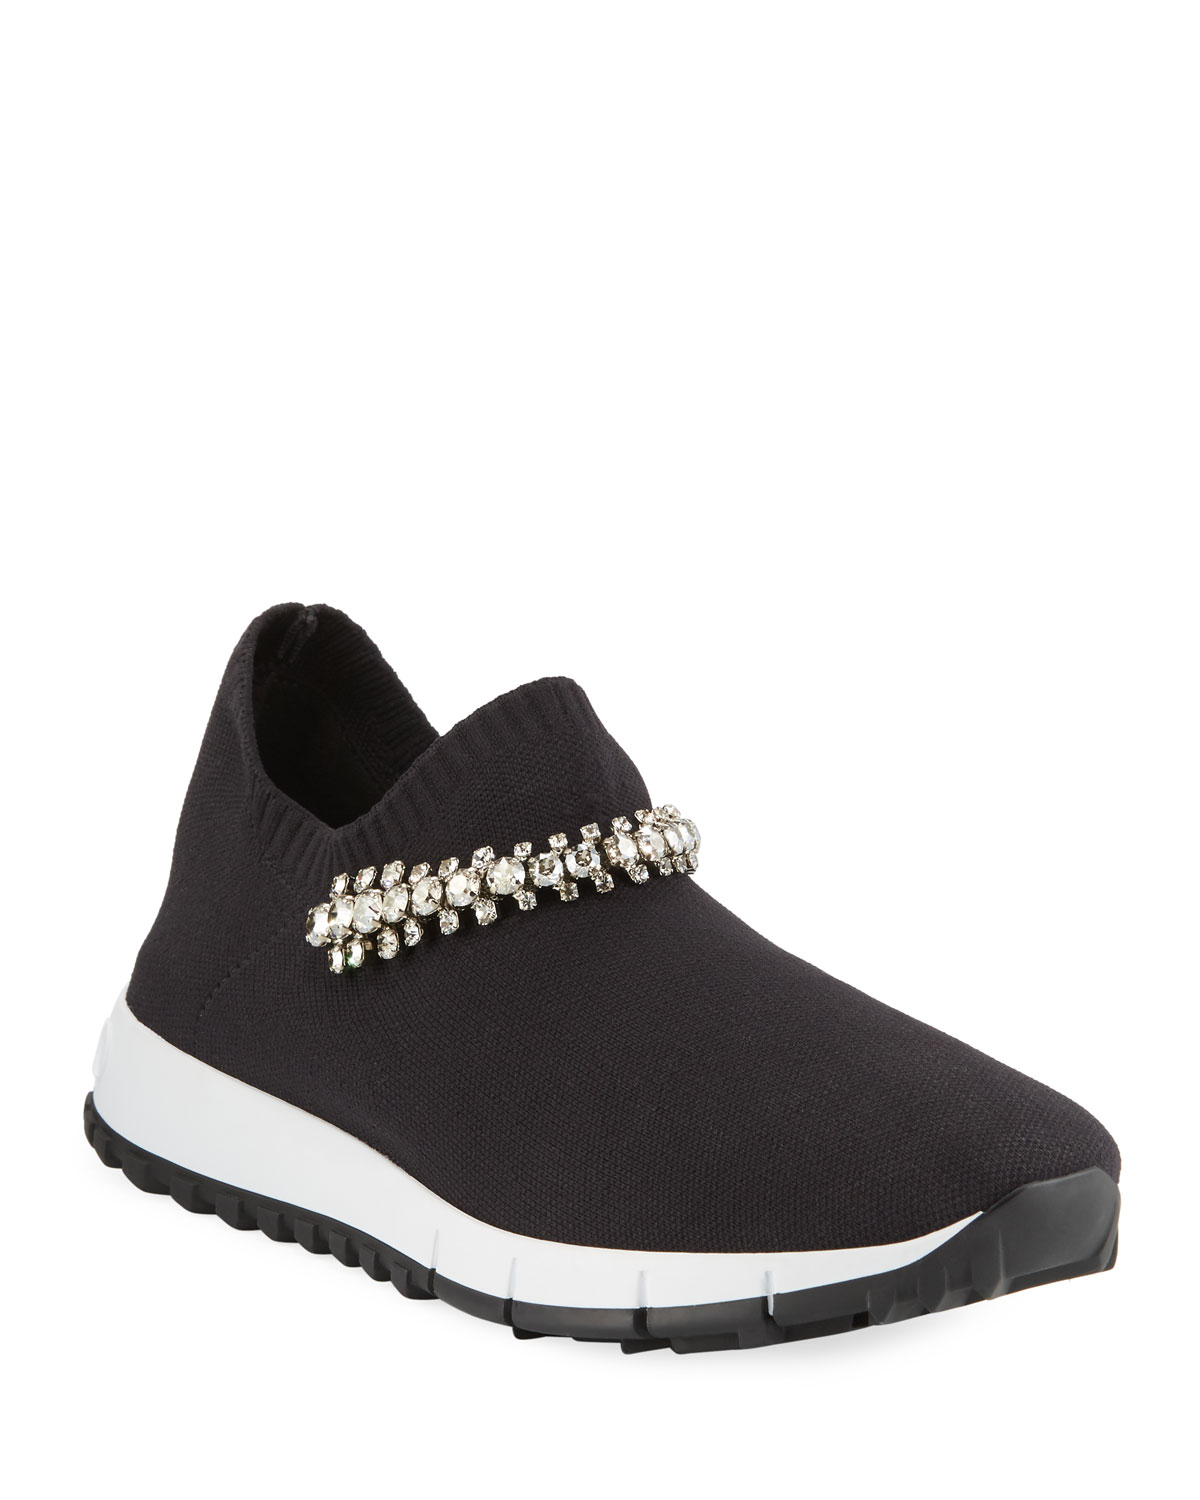 Verona Sneakers with Crystal Strap